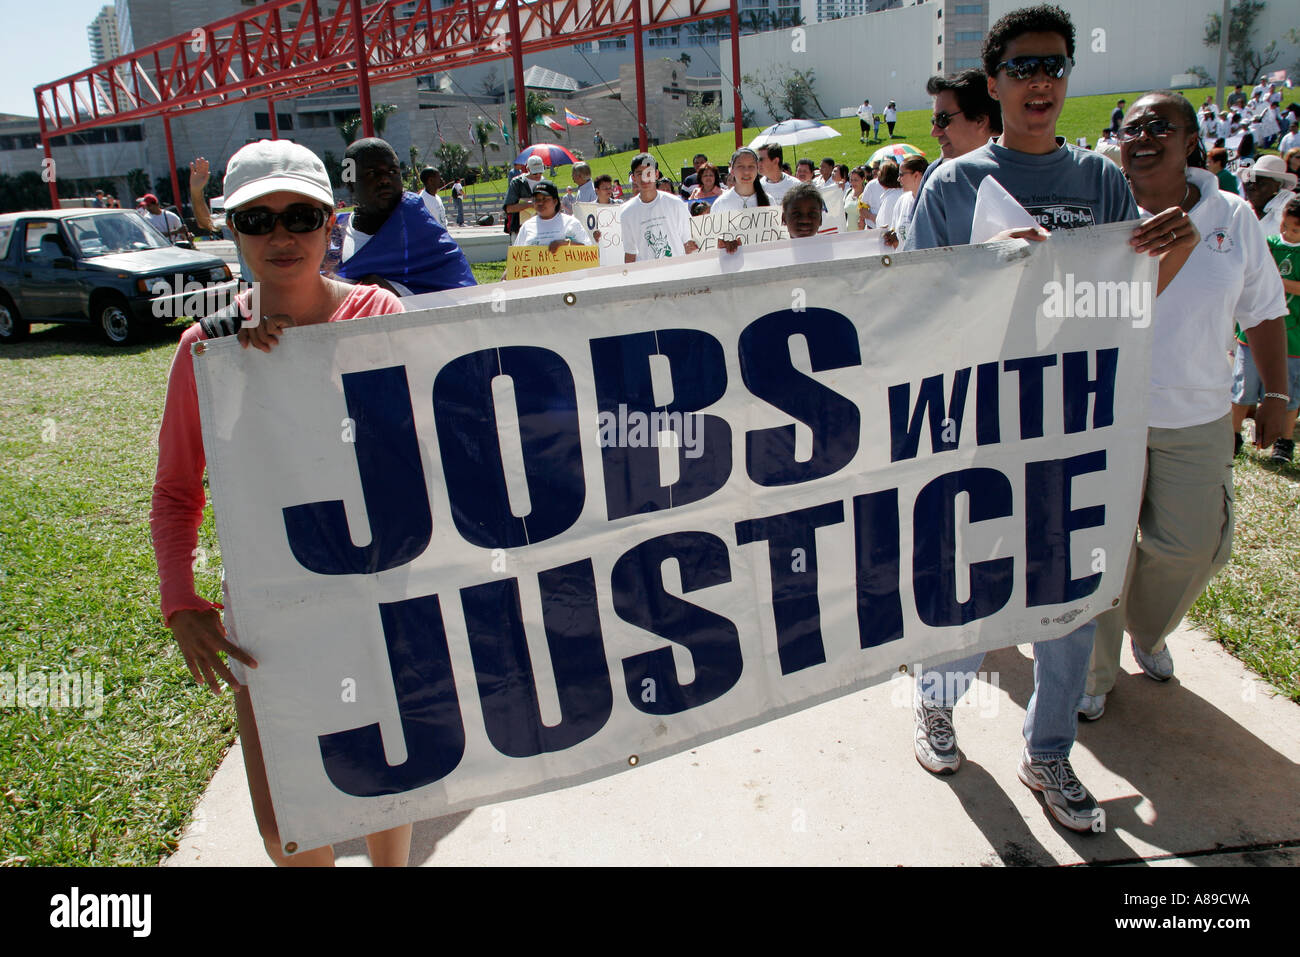 miami florida bayfront park immigrants rights protest hispanic miami florida bayfront park immigrants rights protest hispanic female male banner jobs justice